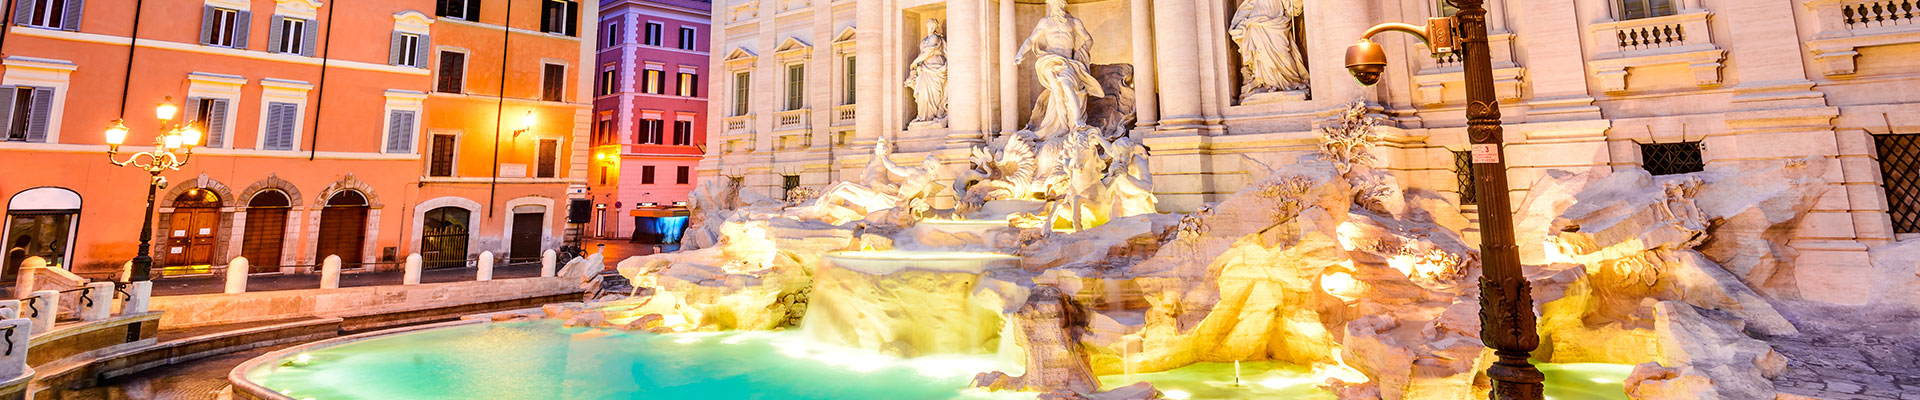 Rome Tour Luxury 4 Day Trip To Rome Italy Boscolo